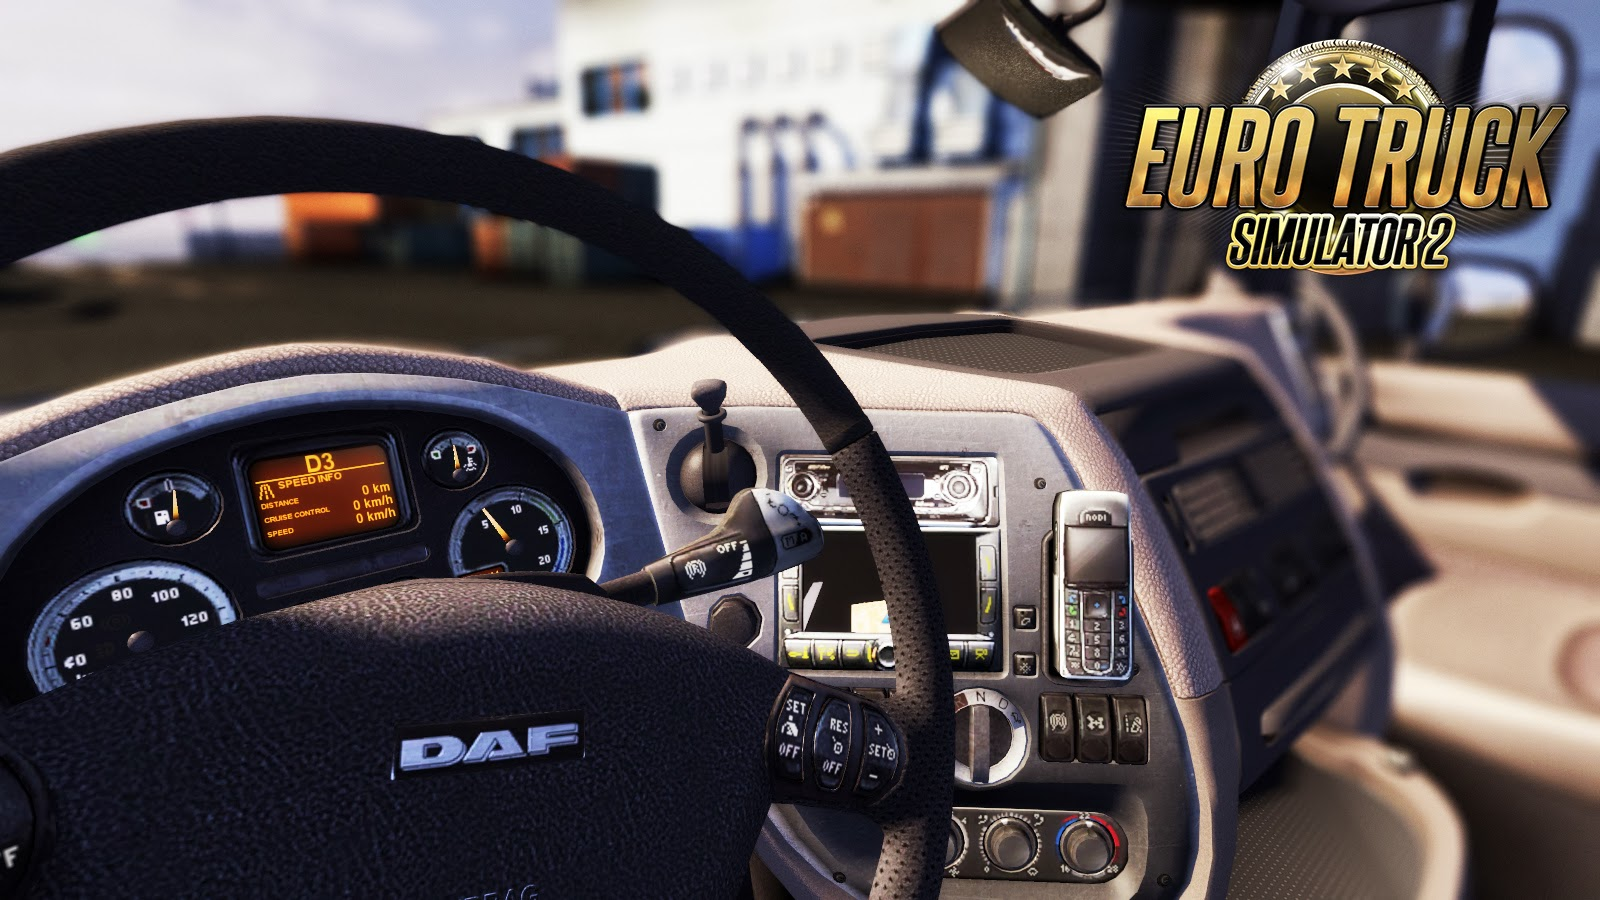 Download Euro Truck Simulator 2 PC game for free